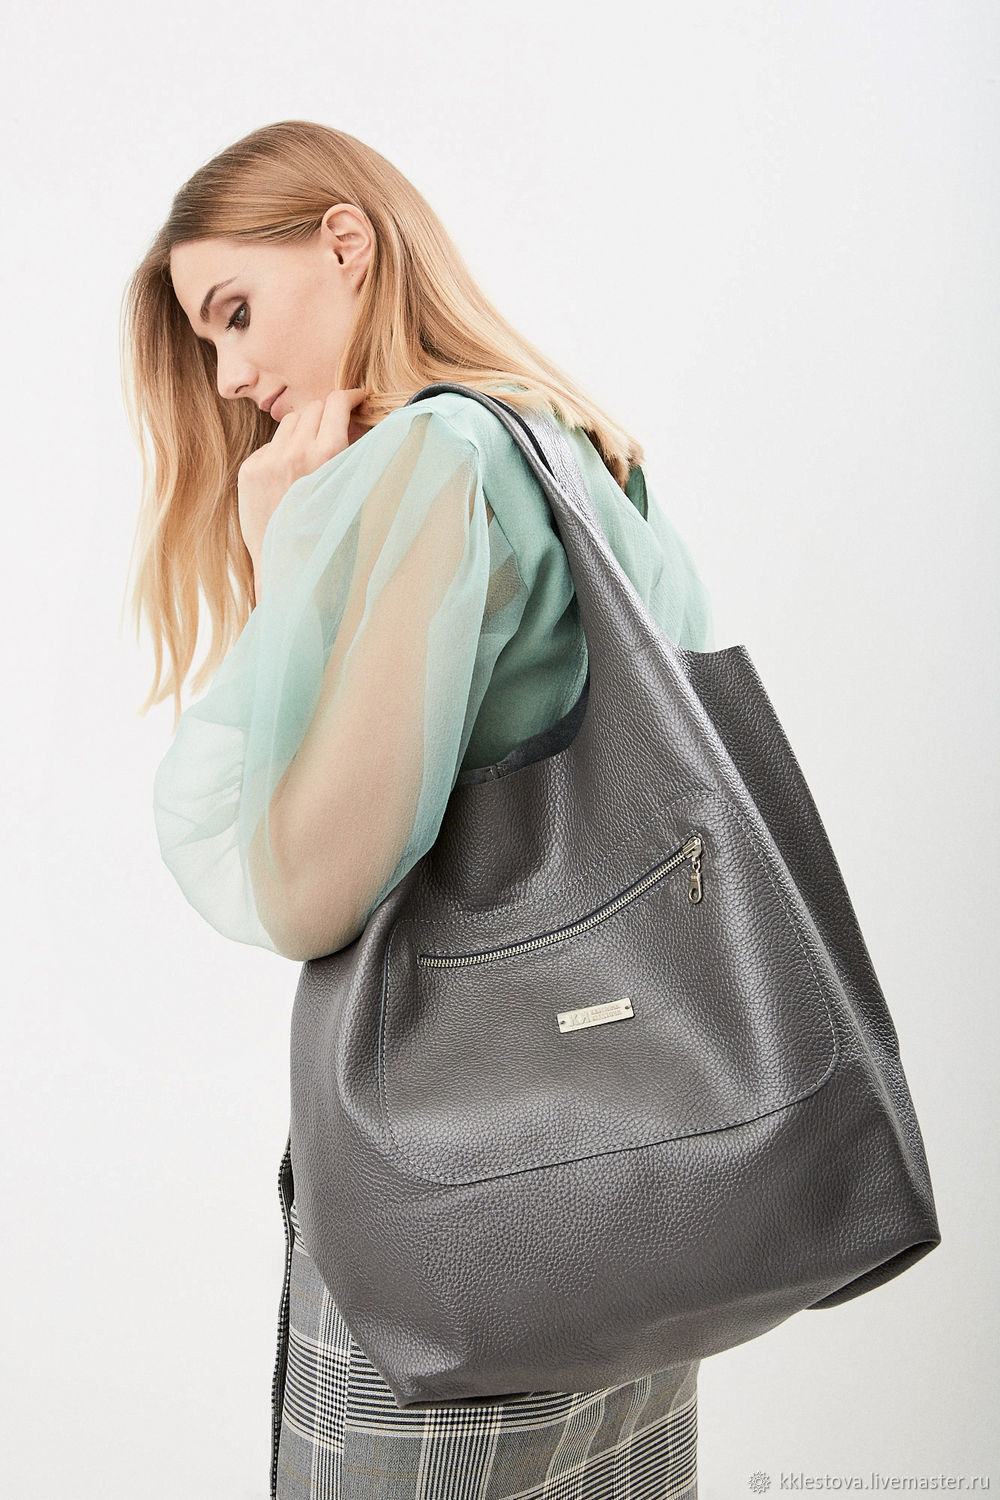 Soft grey bag - Bag Pack - large size leather, Sacks, Moscow,  Фото №1